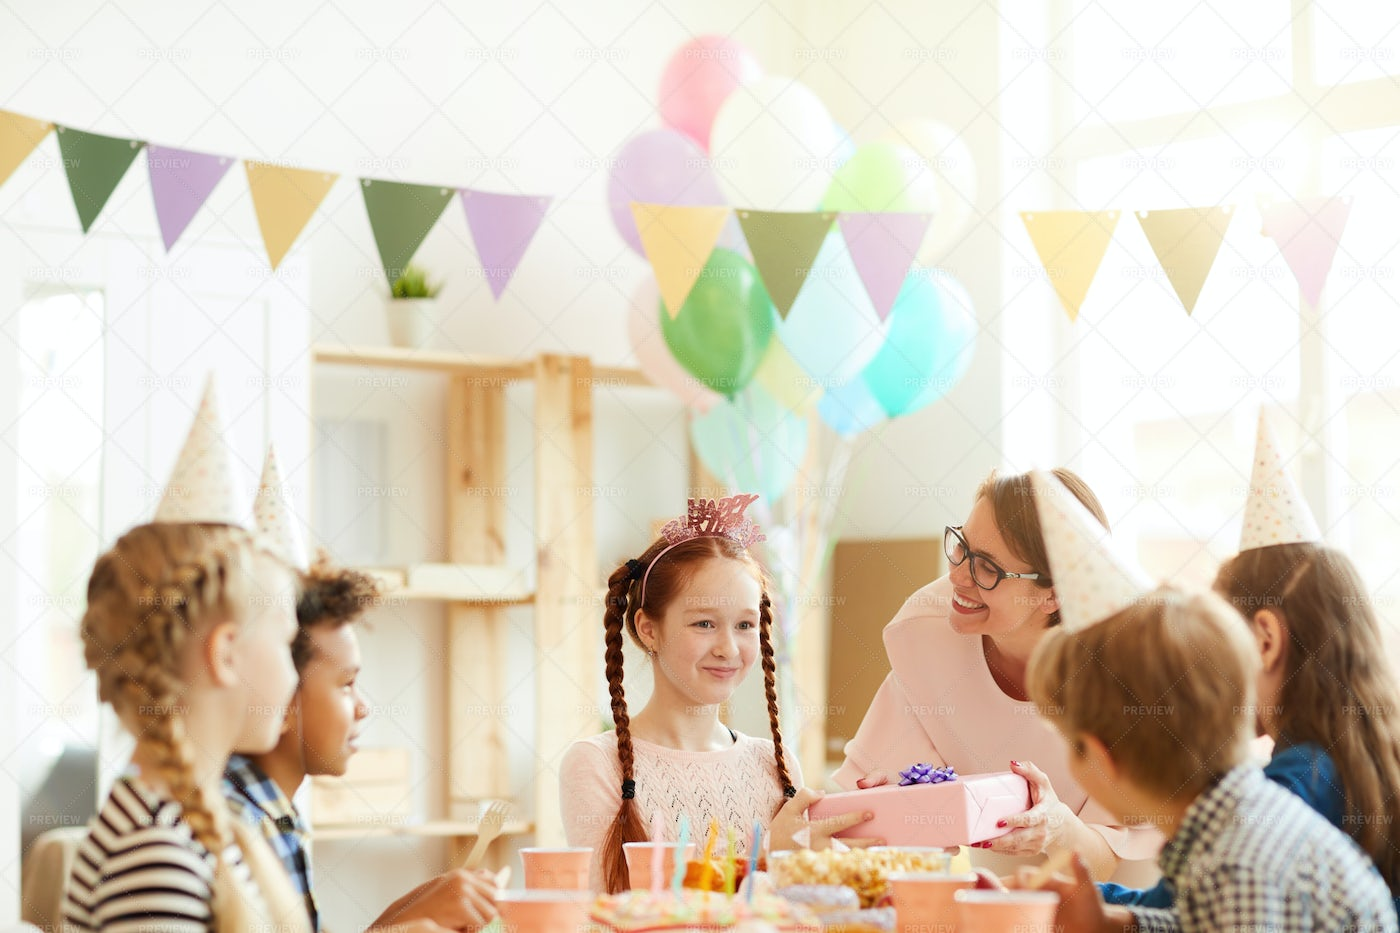 Red Haired Girl At Birthday Party: Stock Photos